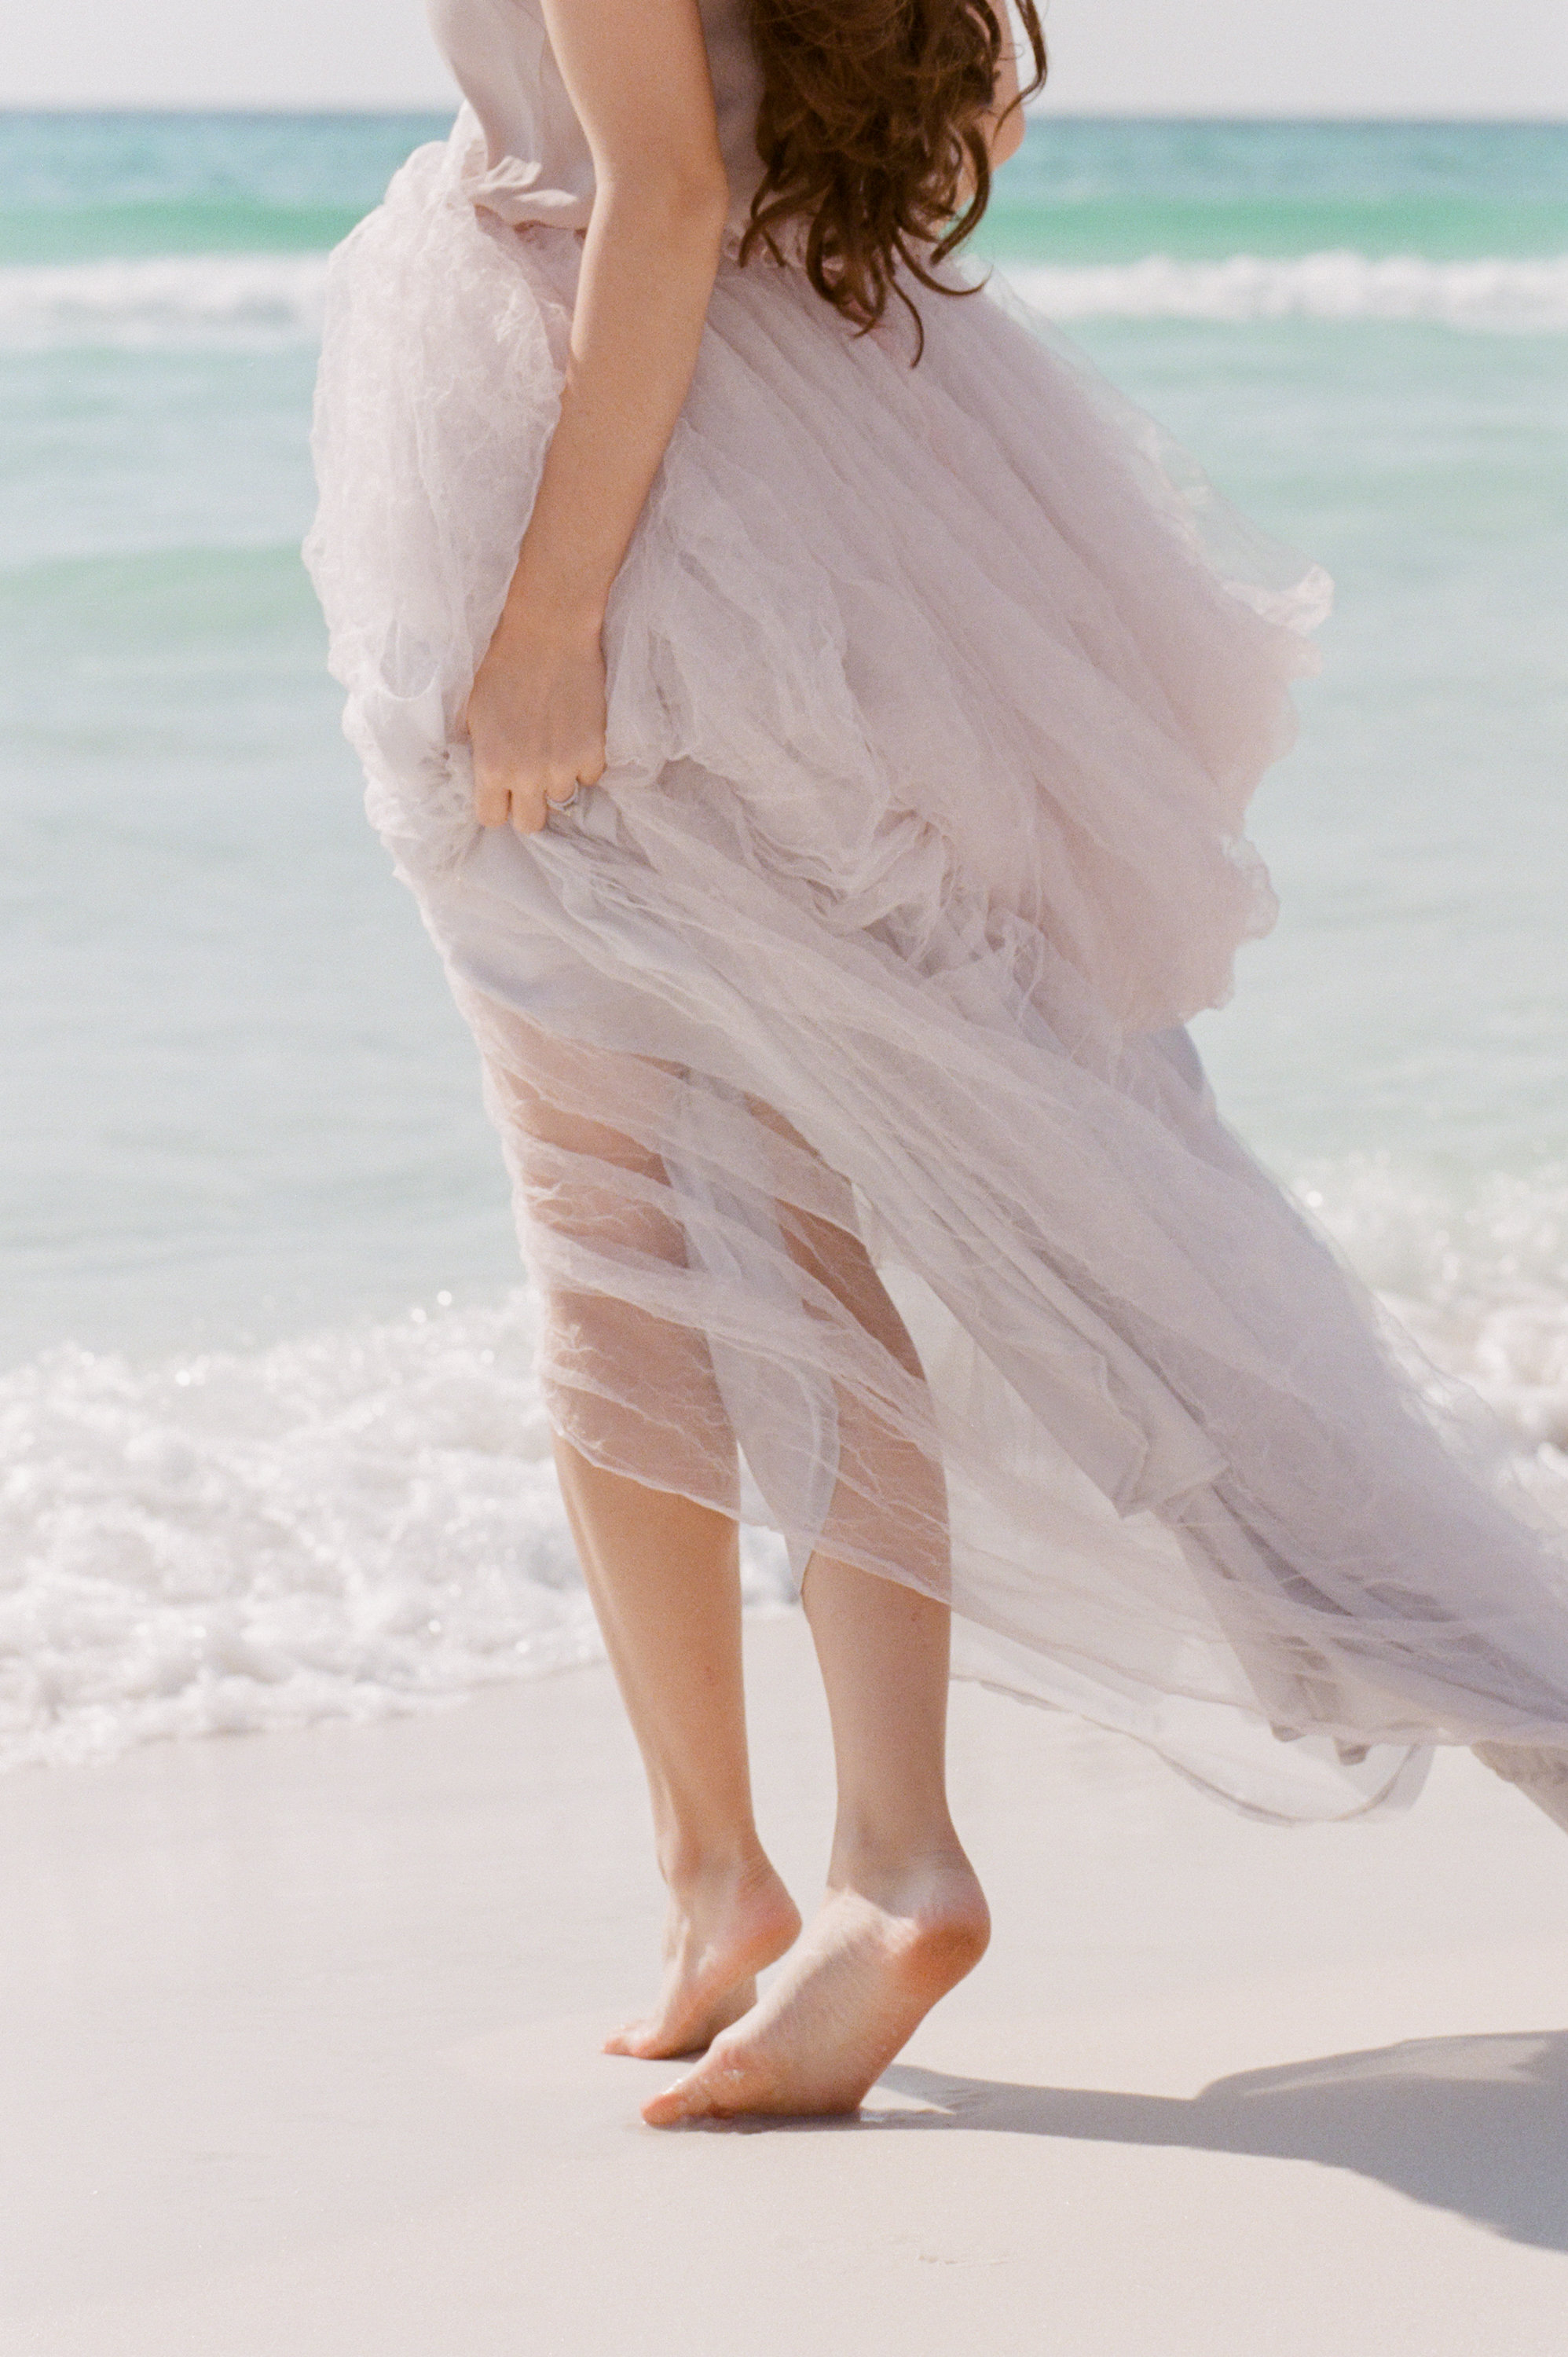 seaside-fl-fineart-wedding-photographers